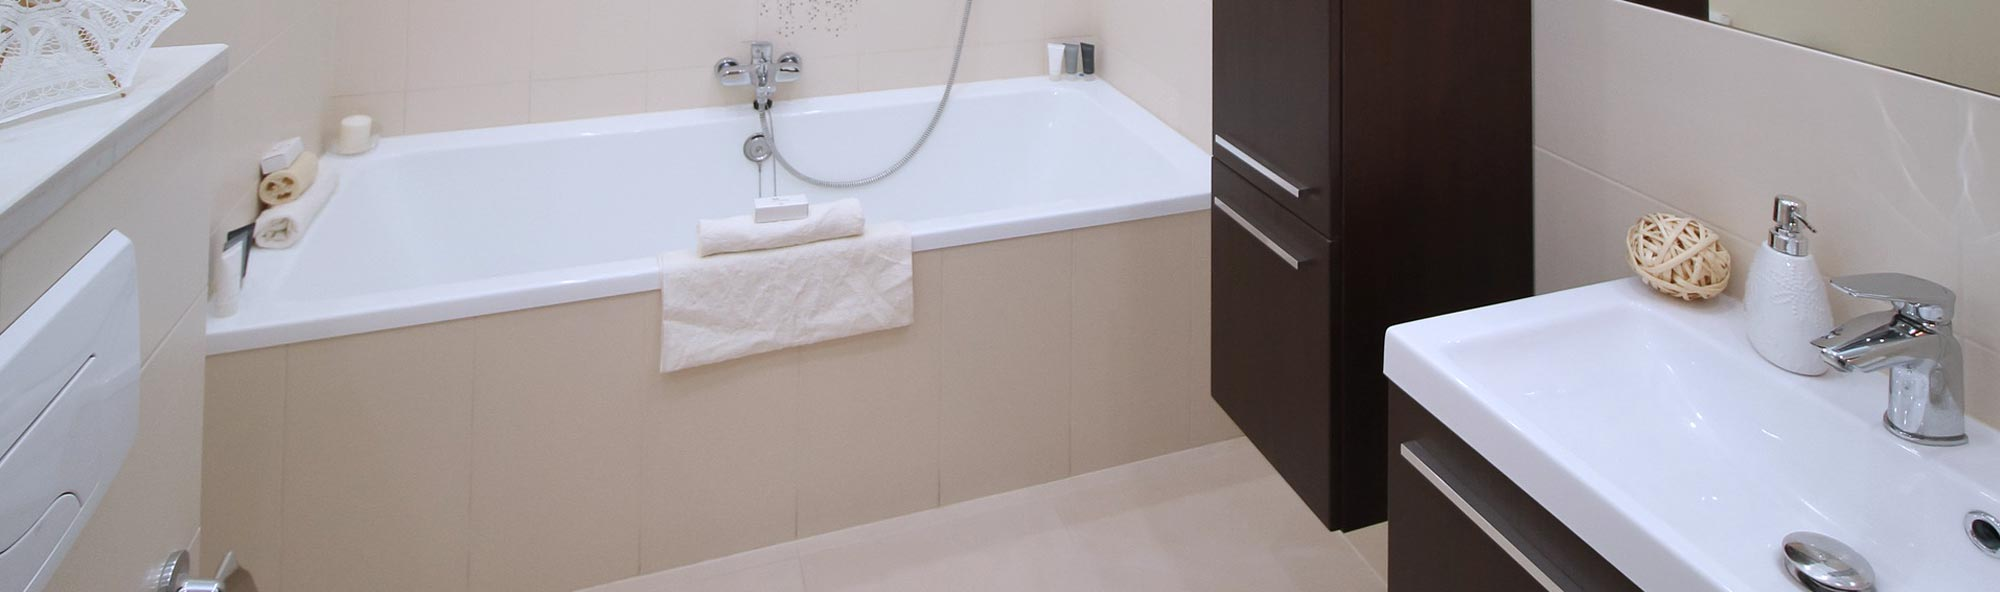 custom-bathroom-renovation-auckland, Kitchen Renovation, Bathroom Renovation, House Renovation Auckland